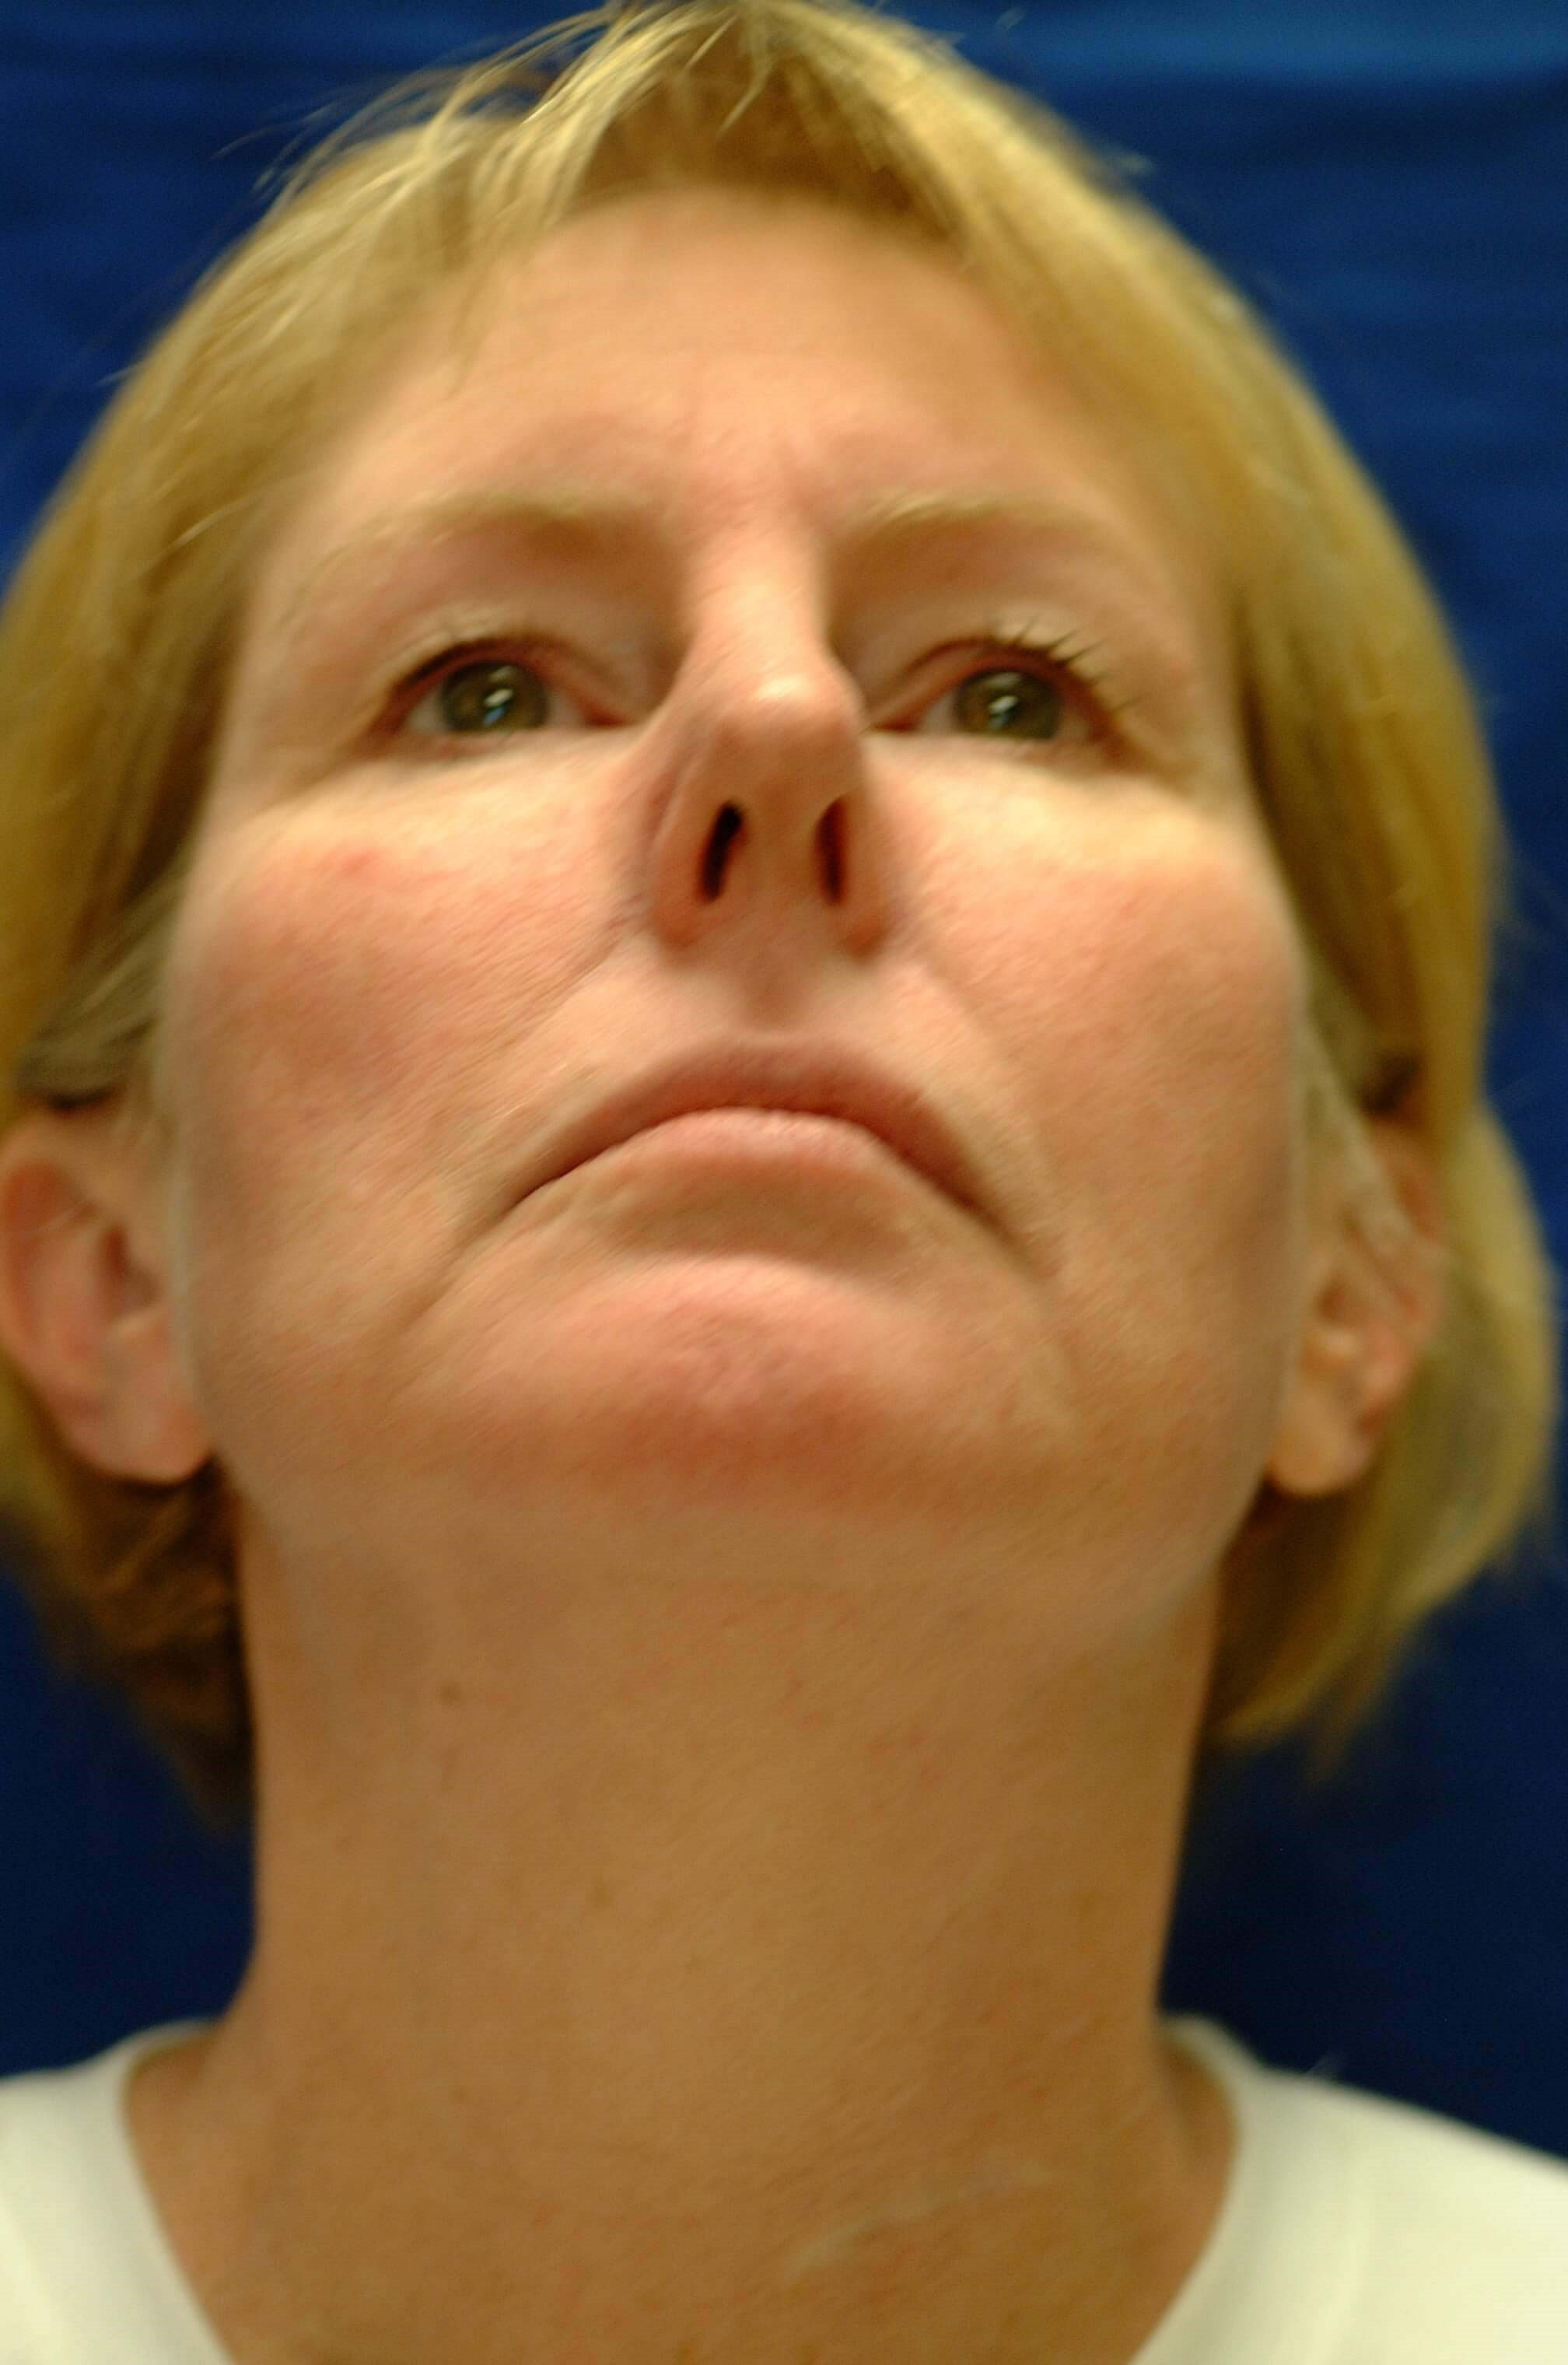 Newport Facelift Rhinoplasty Worms Eye View Before